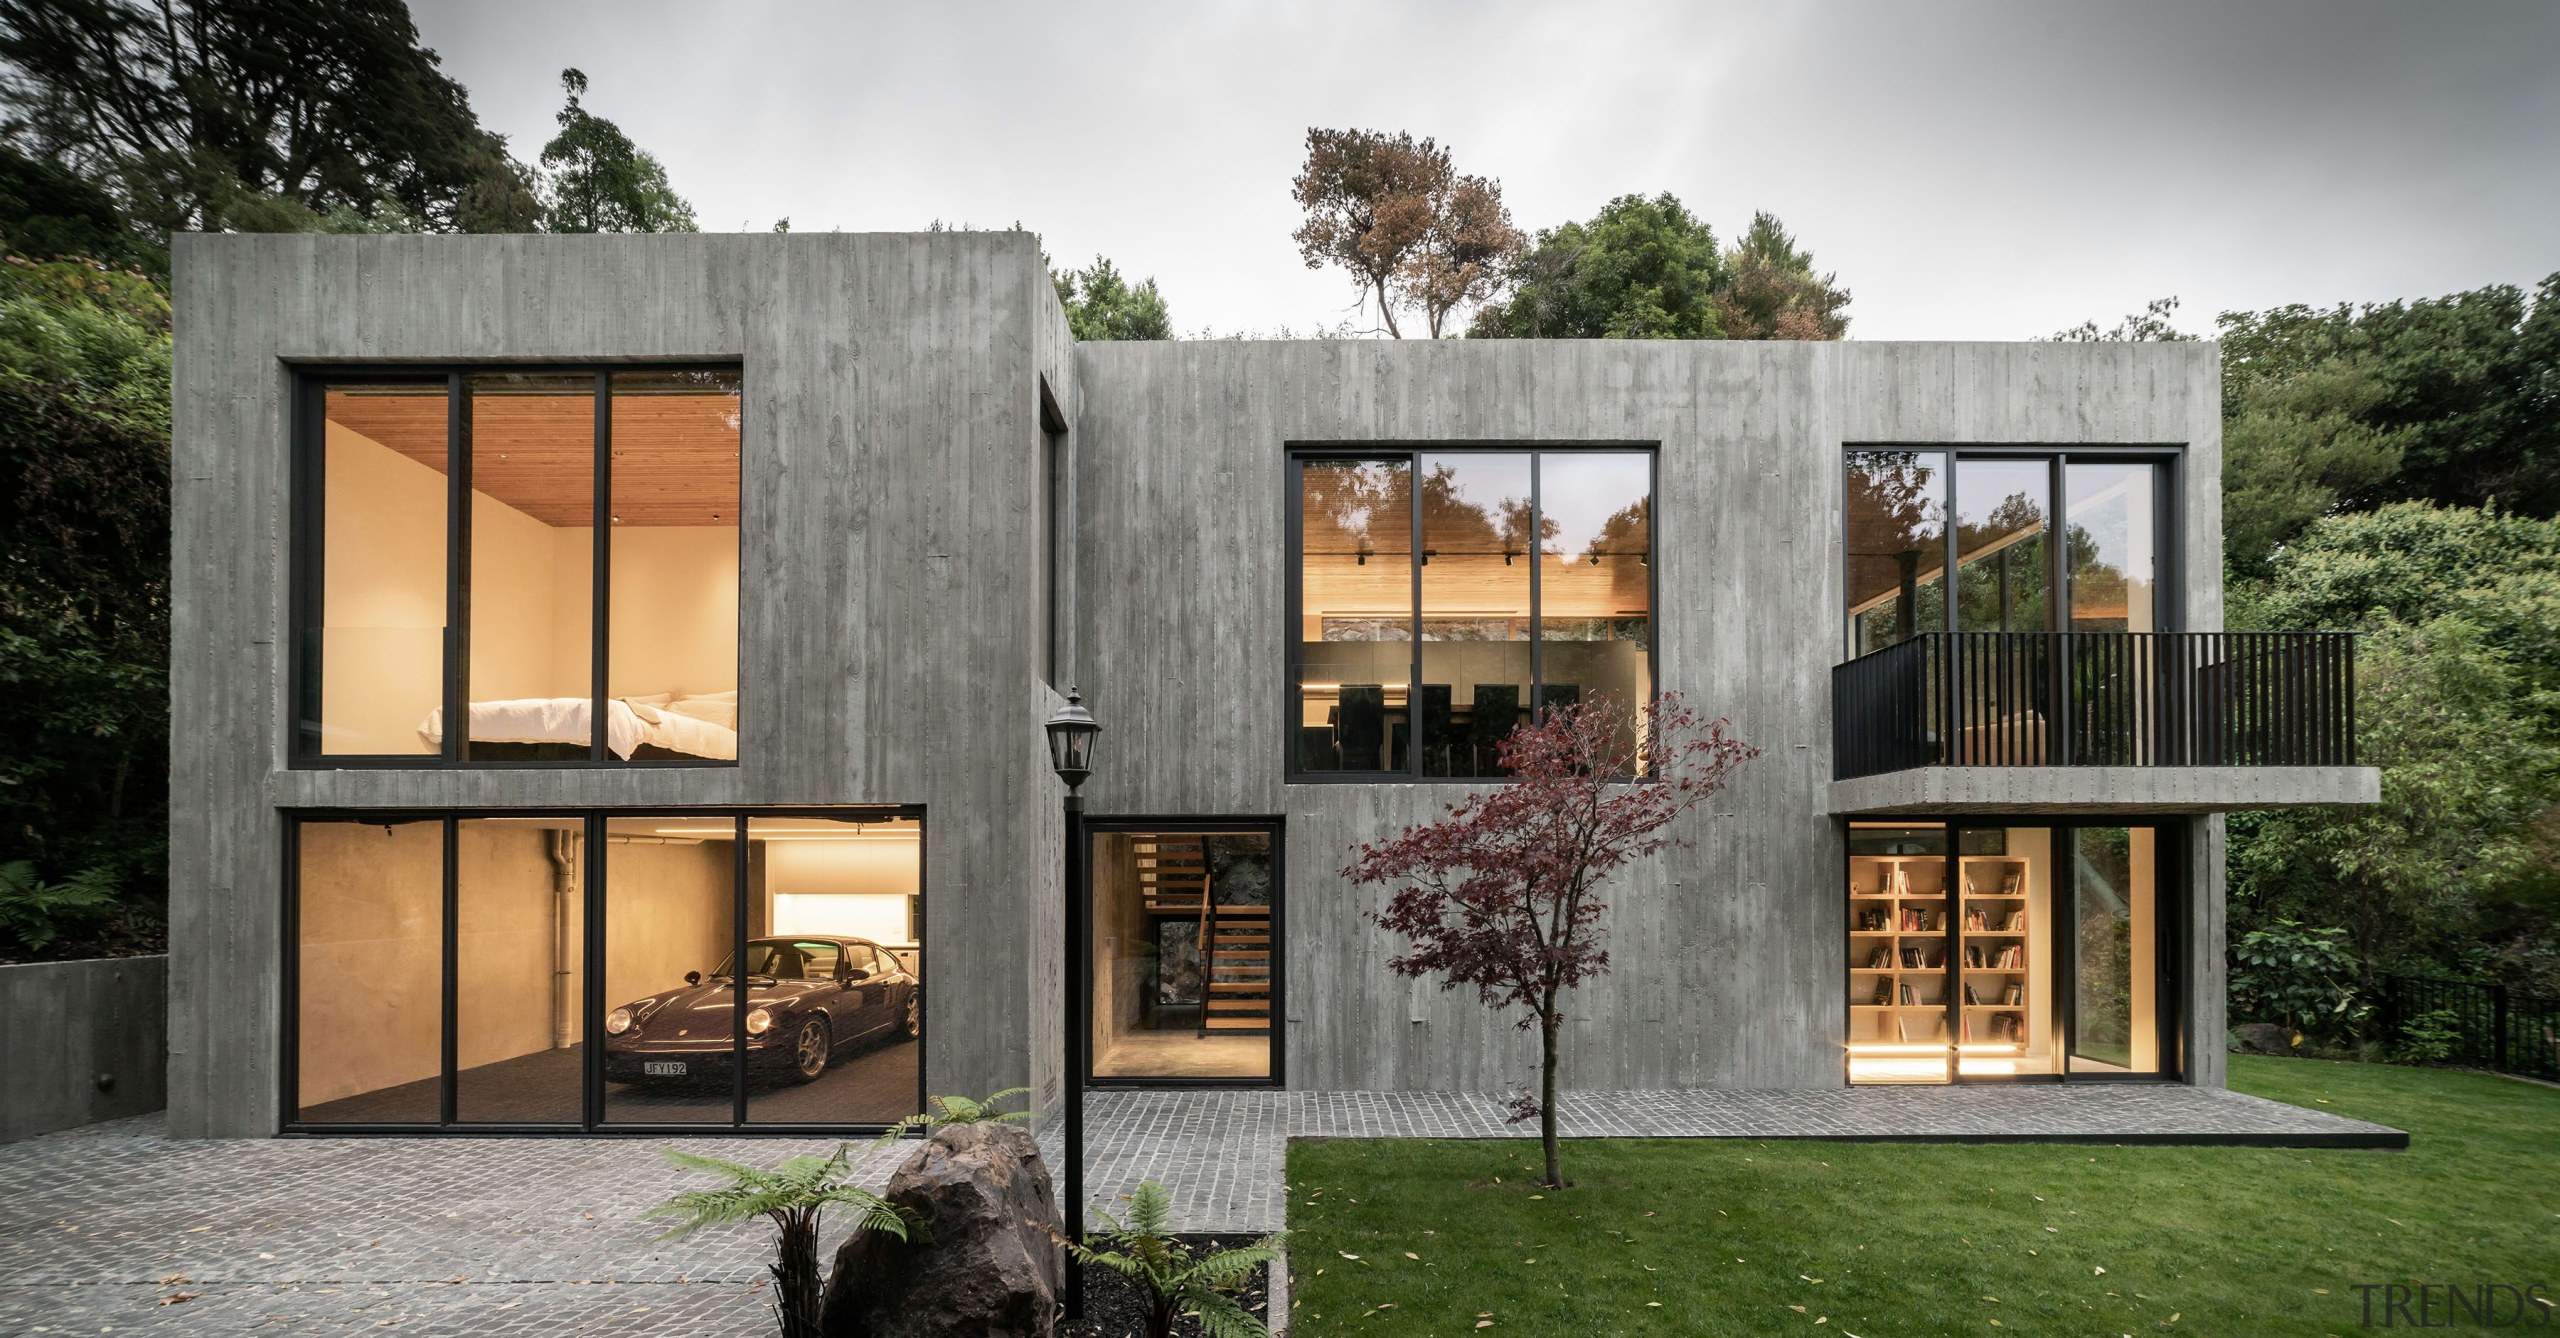 For this house by AO Architecture, the substantial